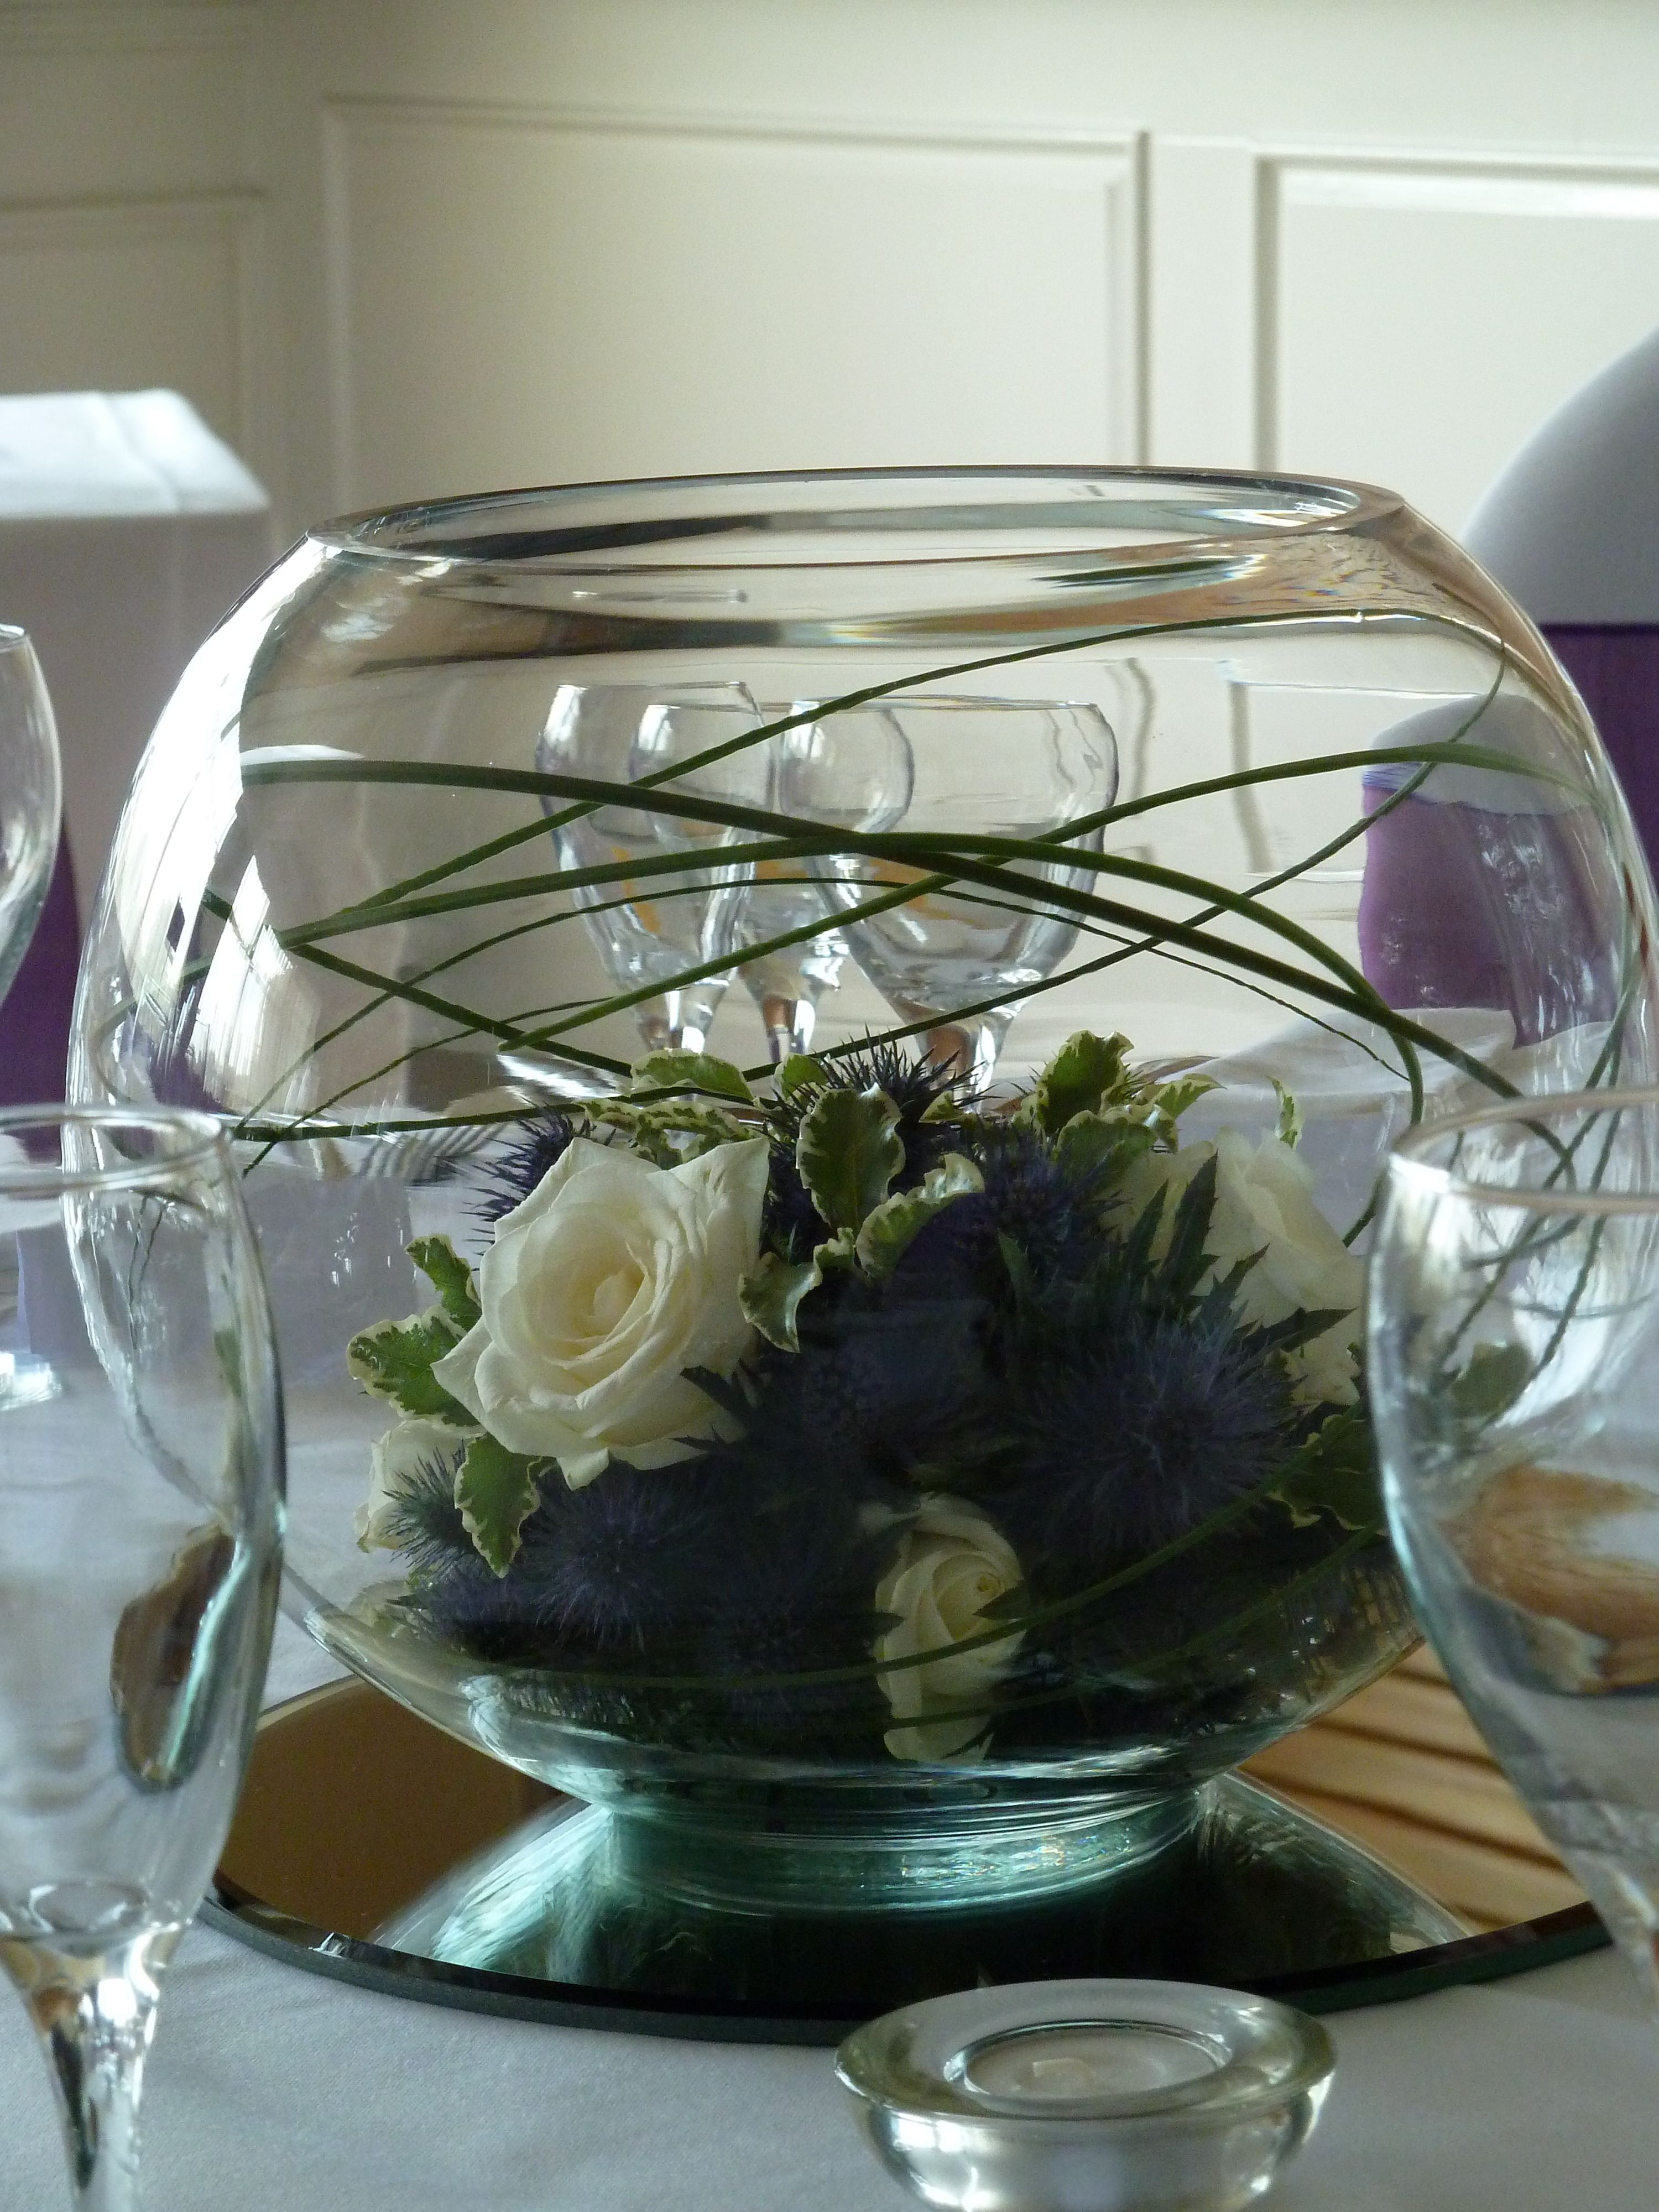 Rose And Thistle Arrangement In Goldfish Bowl Centrepiece